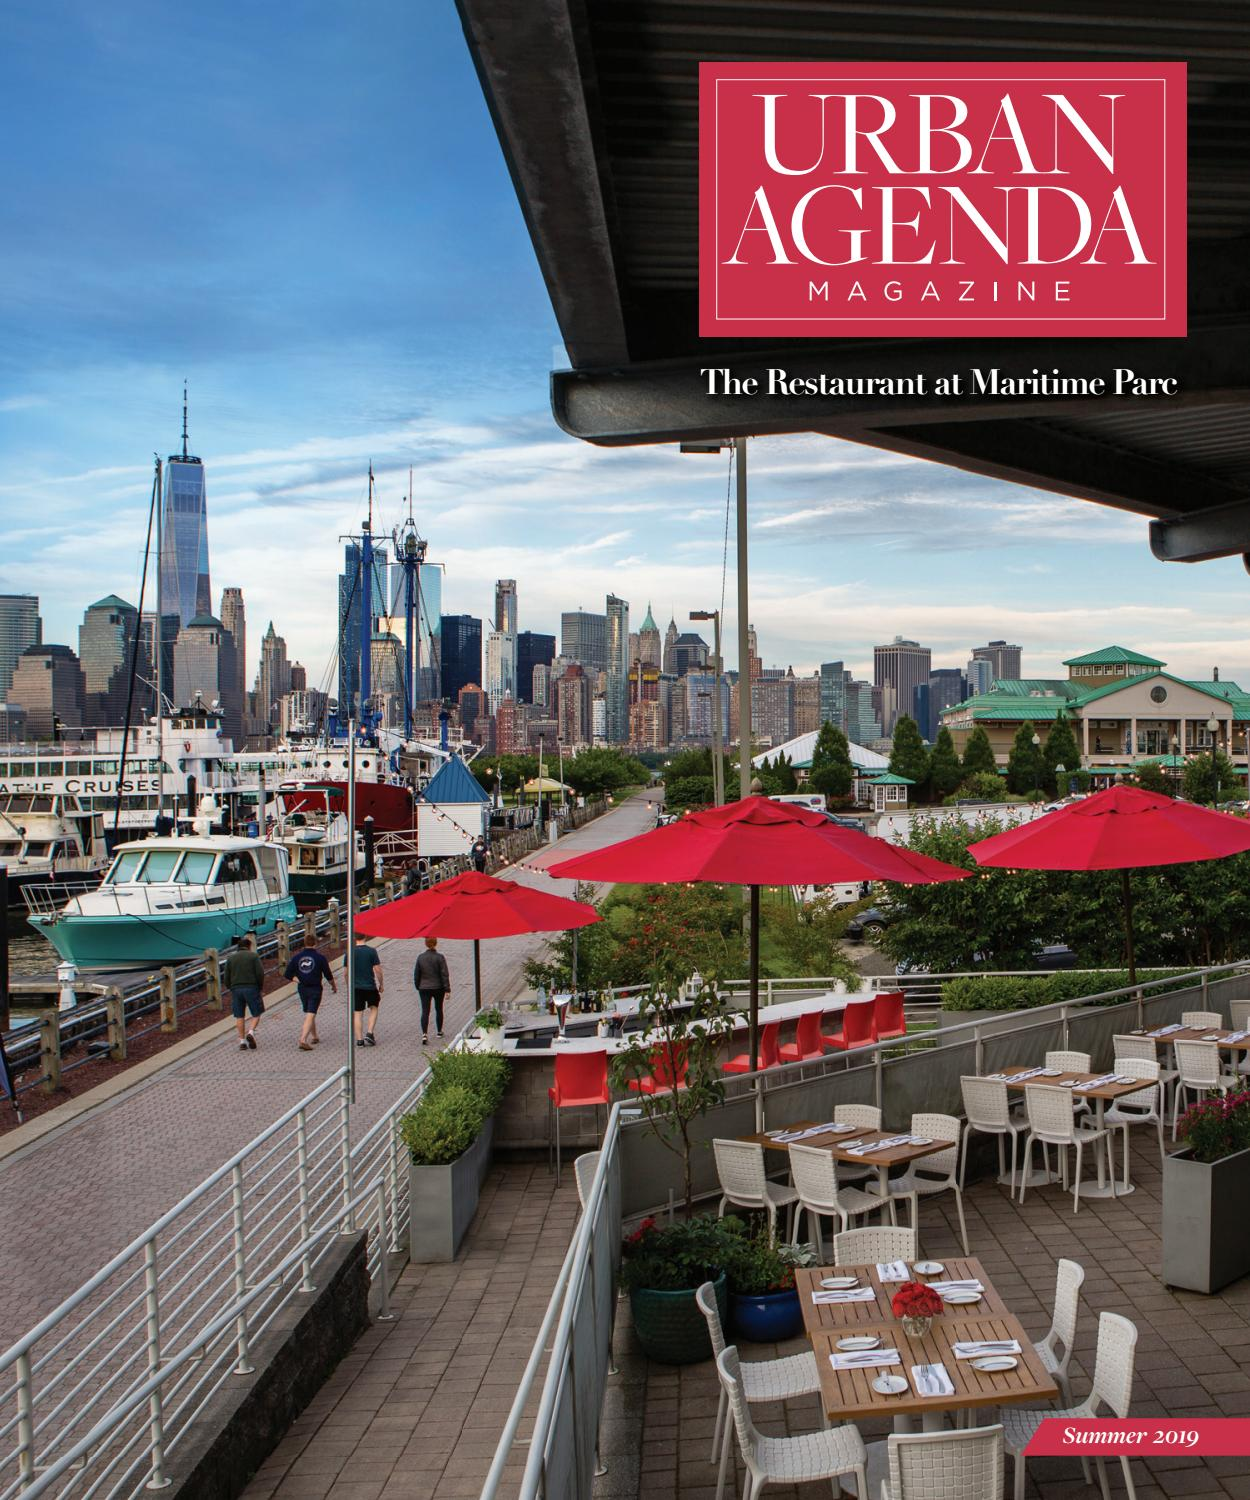 Urban Agenda Magazine Summer 2019 By Witherspoon Media Group Issuu Images, Photos, Reviews